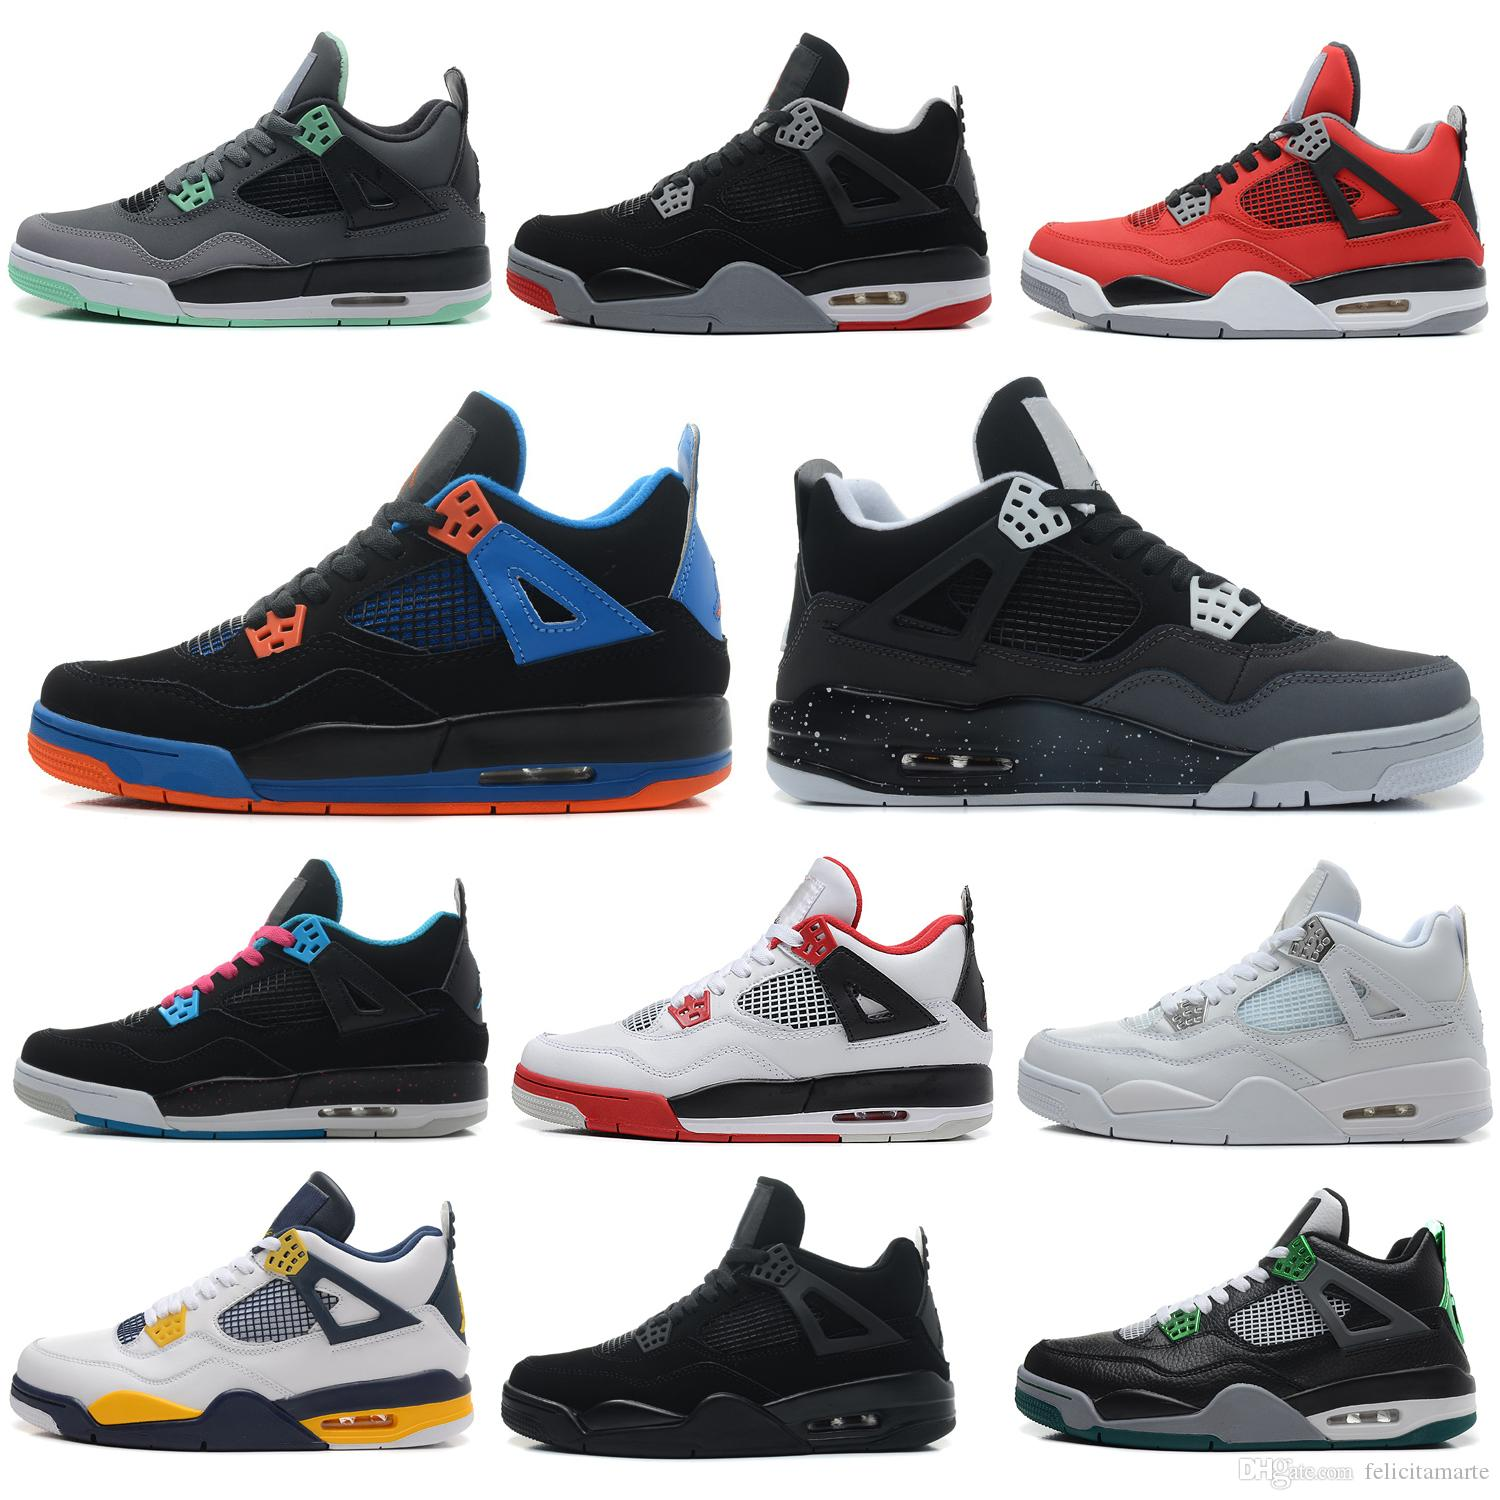 611a29da161 2019 2018 4 4s Basketball Shoes Men Pure Money Royalty White Cement Raptors  Black Cat Bred Fire Red Mens Trainers Air Sports Sneakers From  Felicitamarte, ...